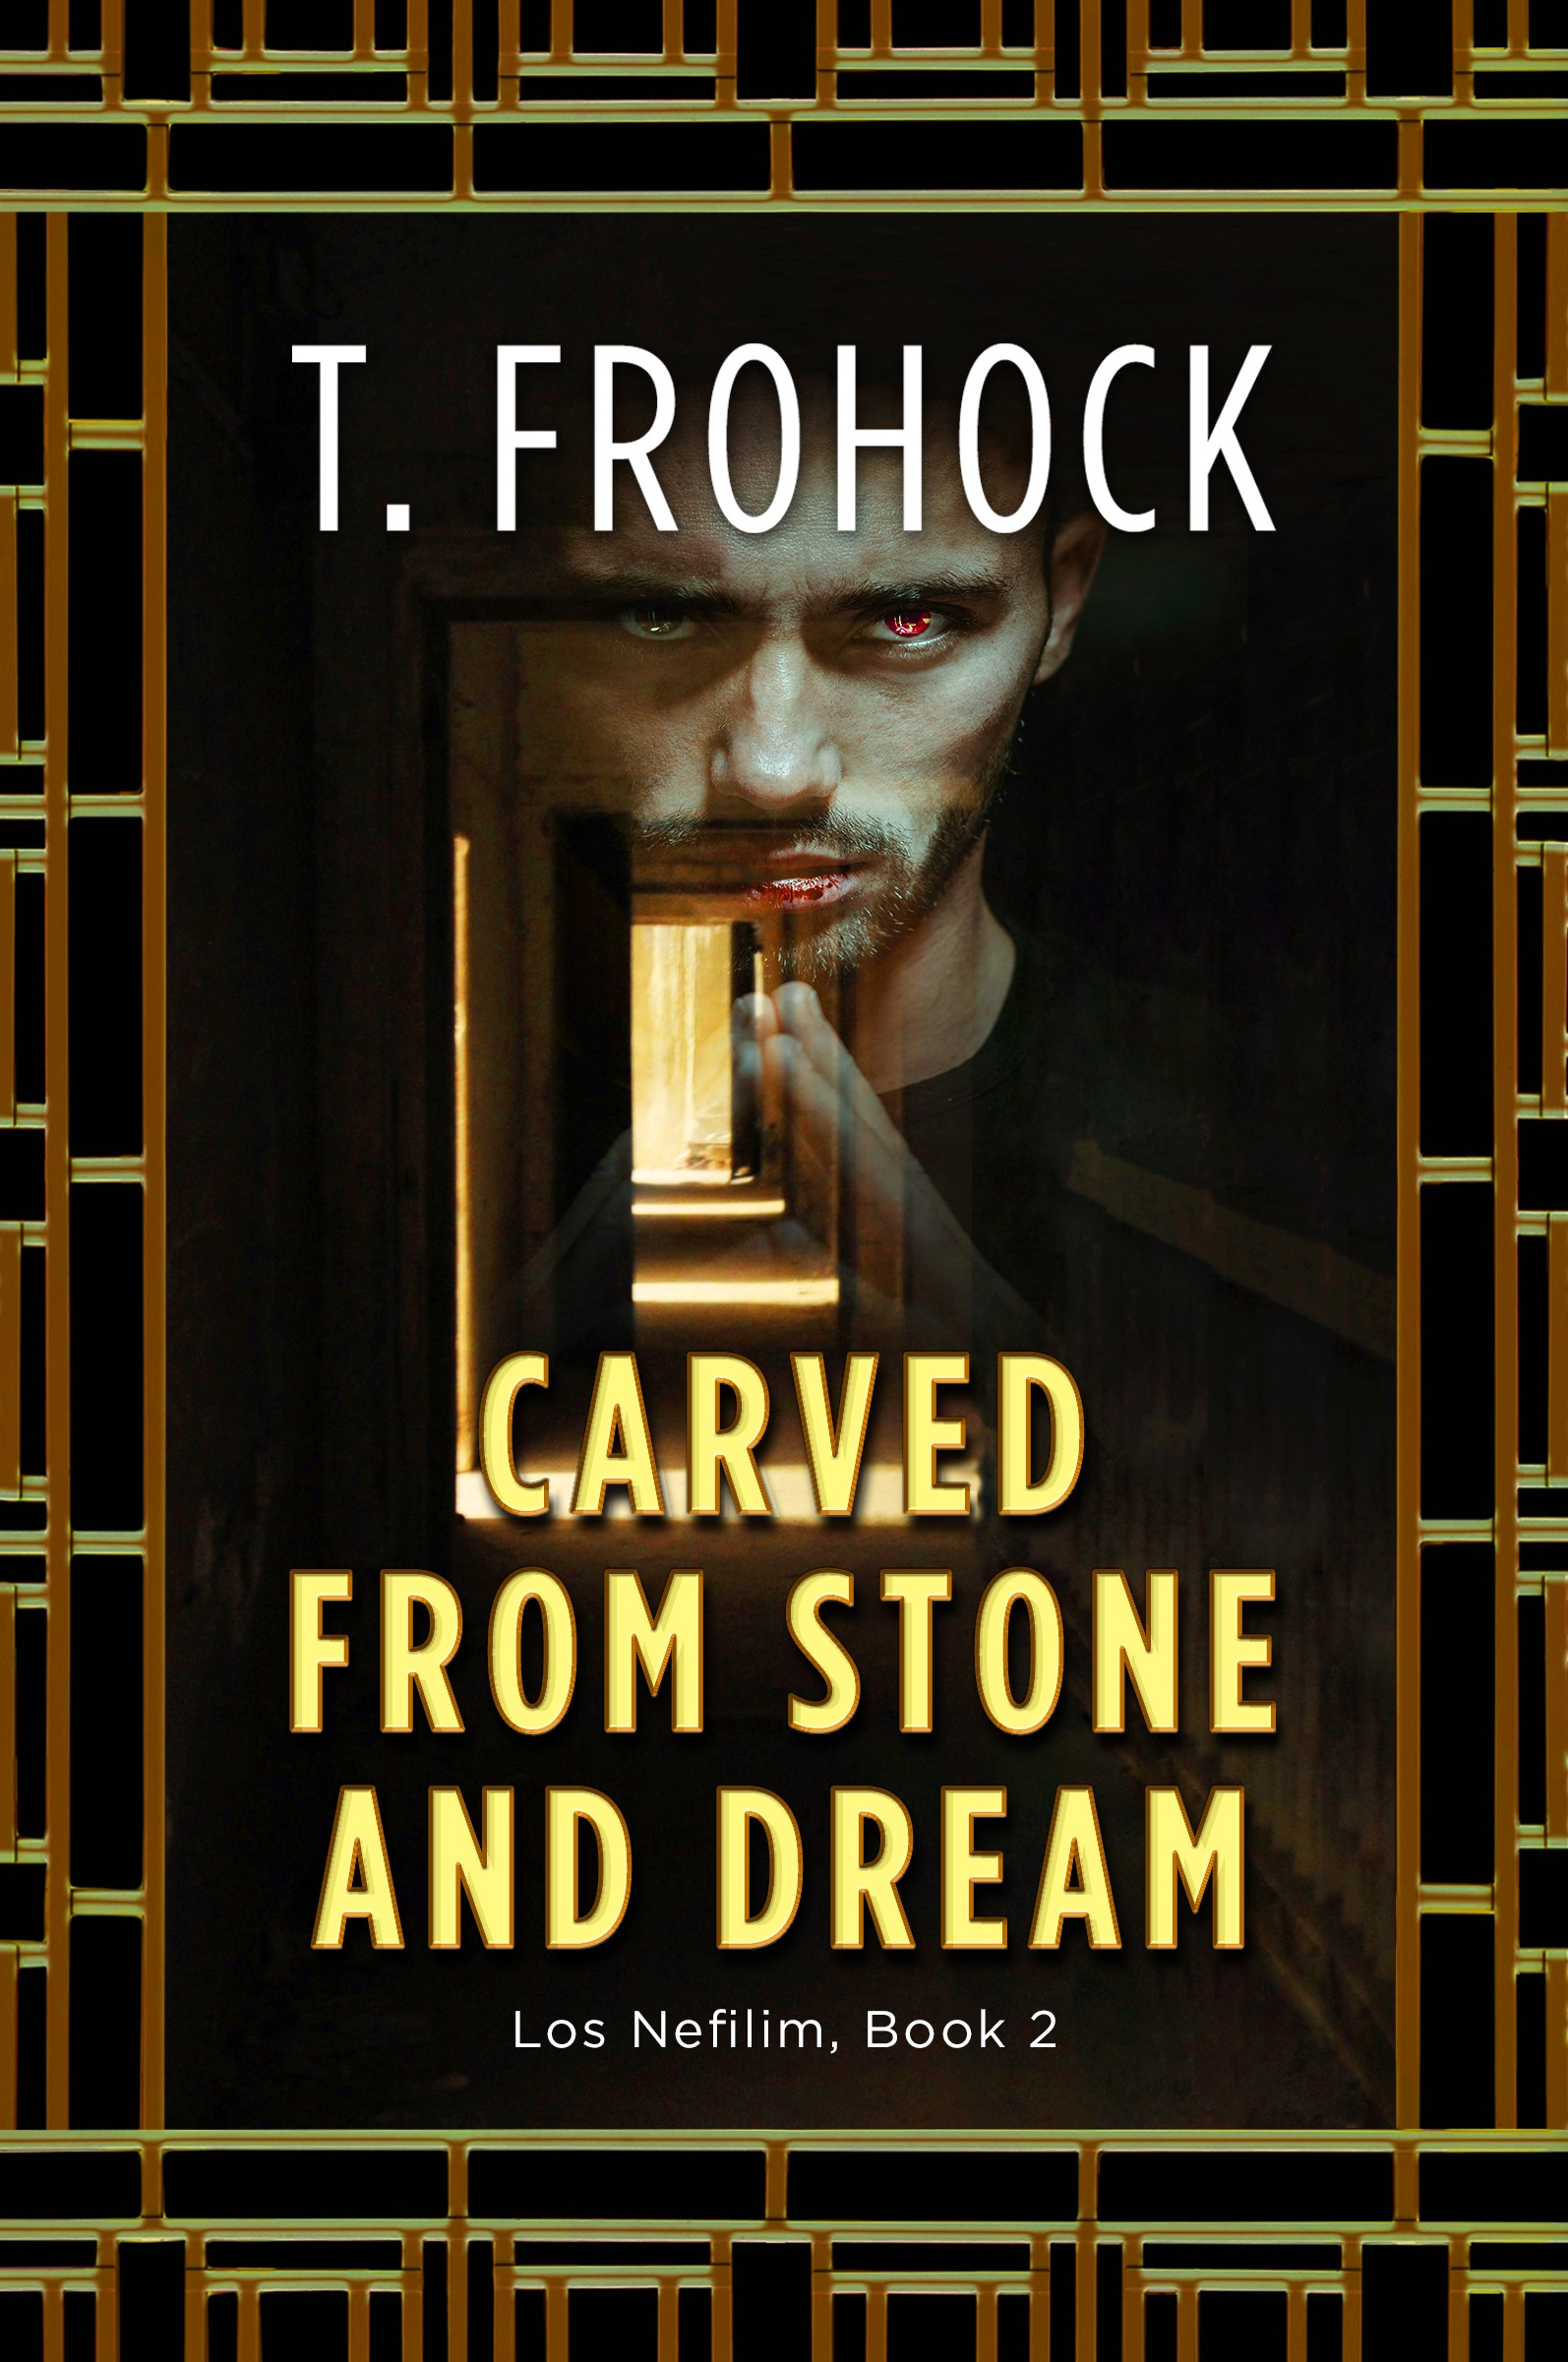 Carved from Stone and Dream by T. Frohock